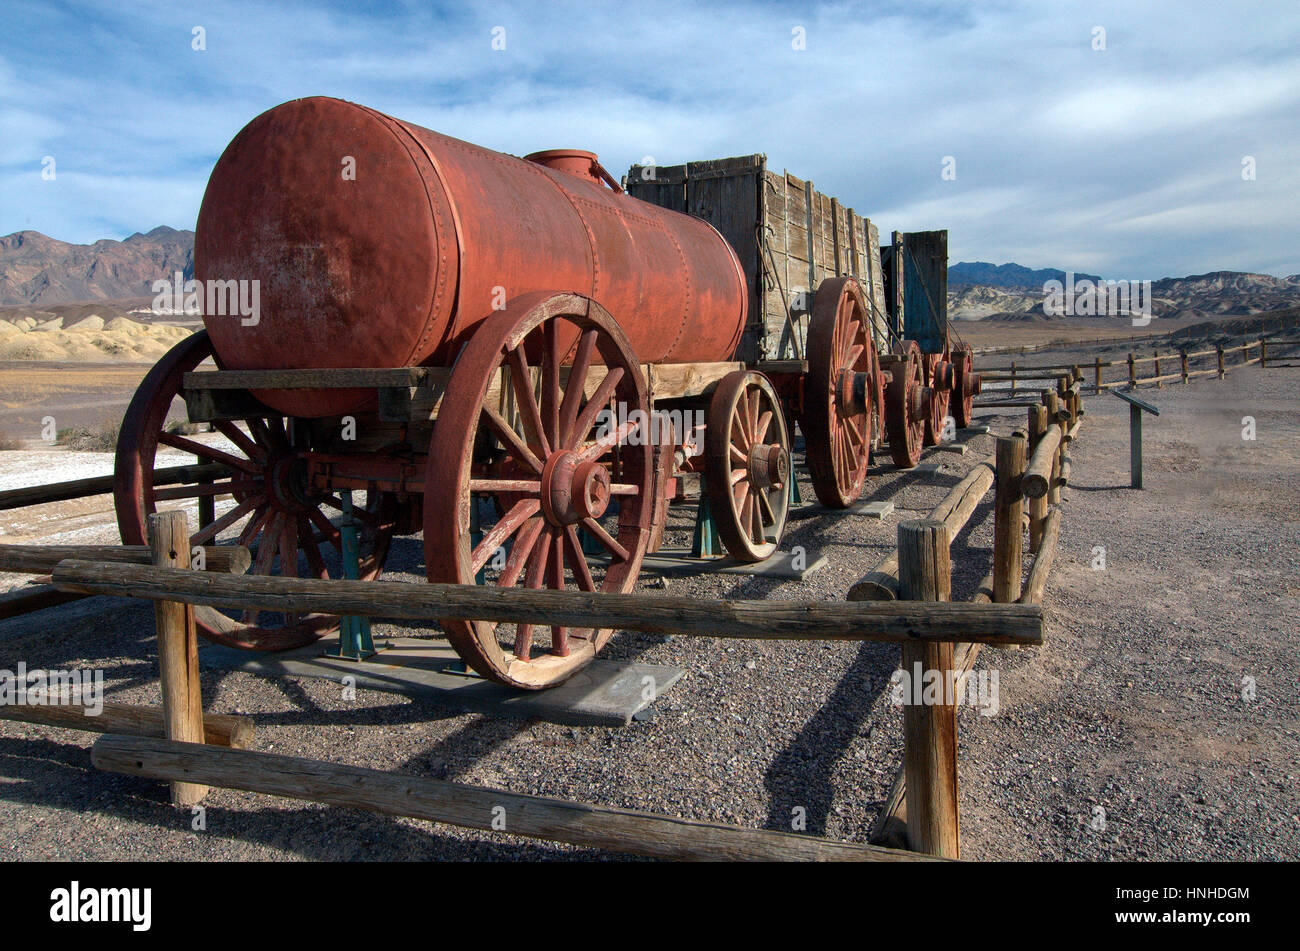 Old mining wagon at the Borax Museum, Death Valley National Park - Stock Image